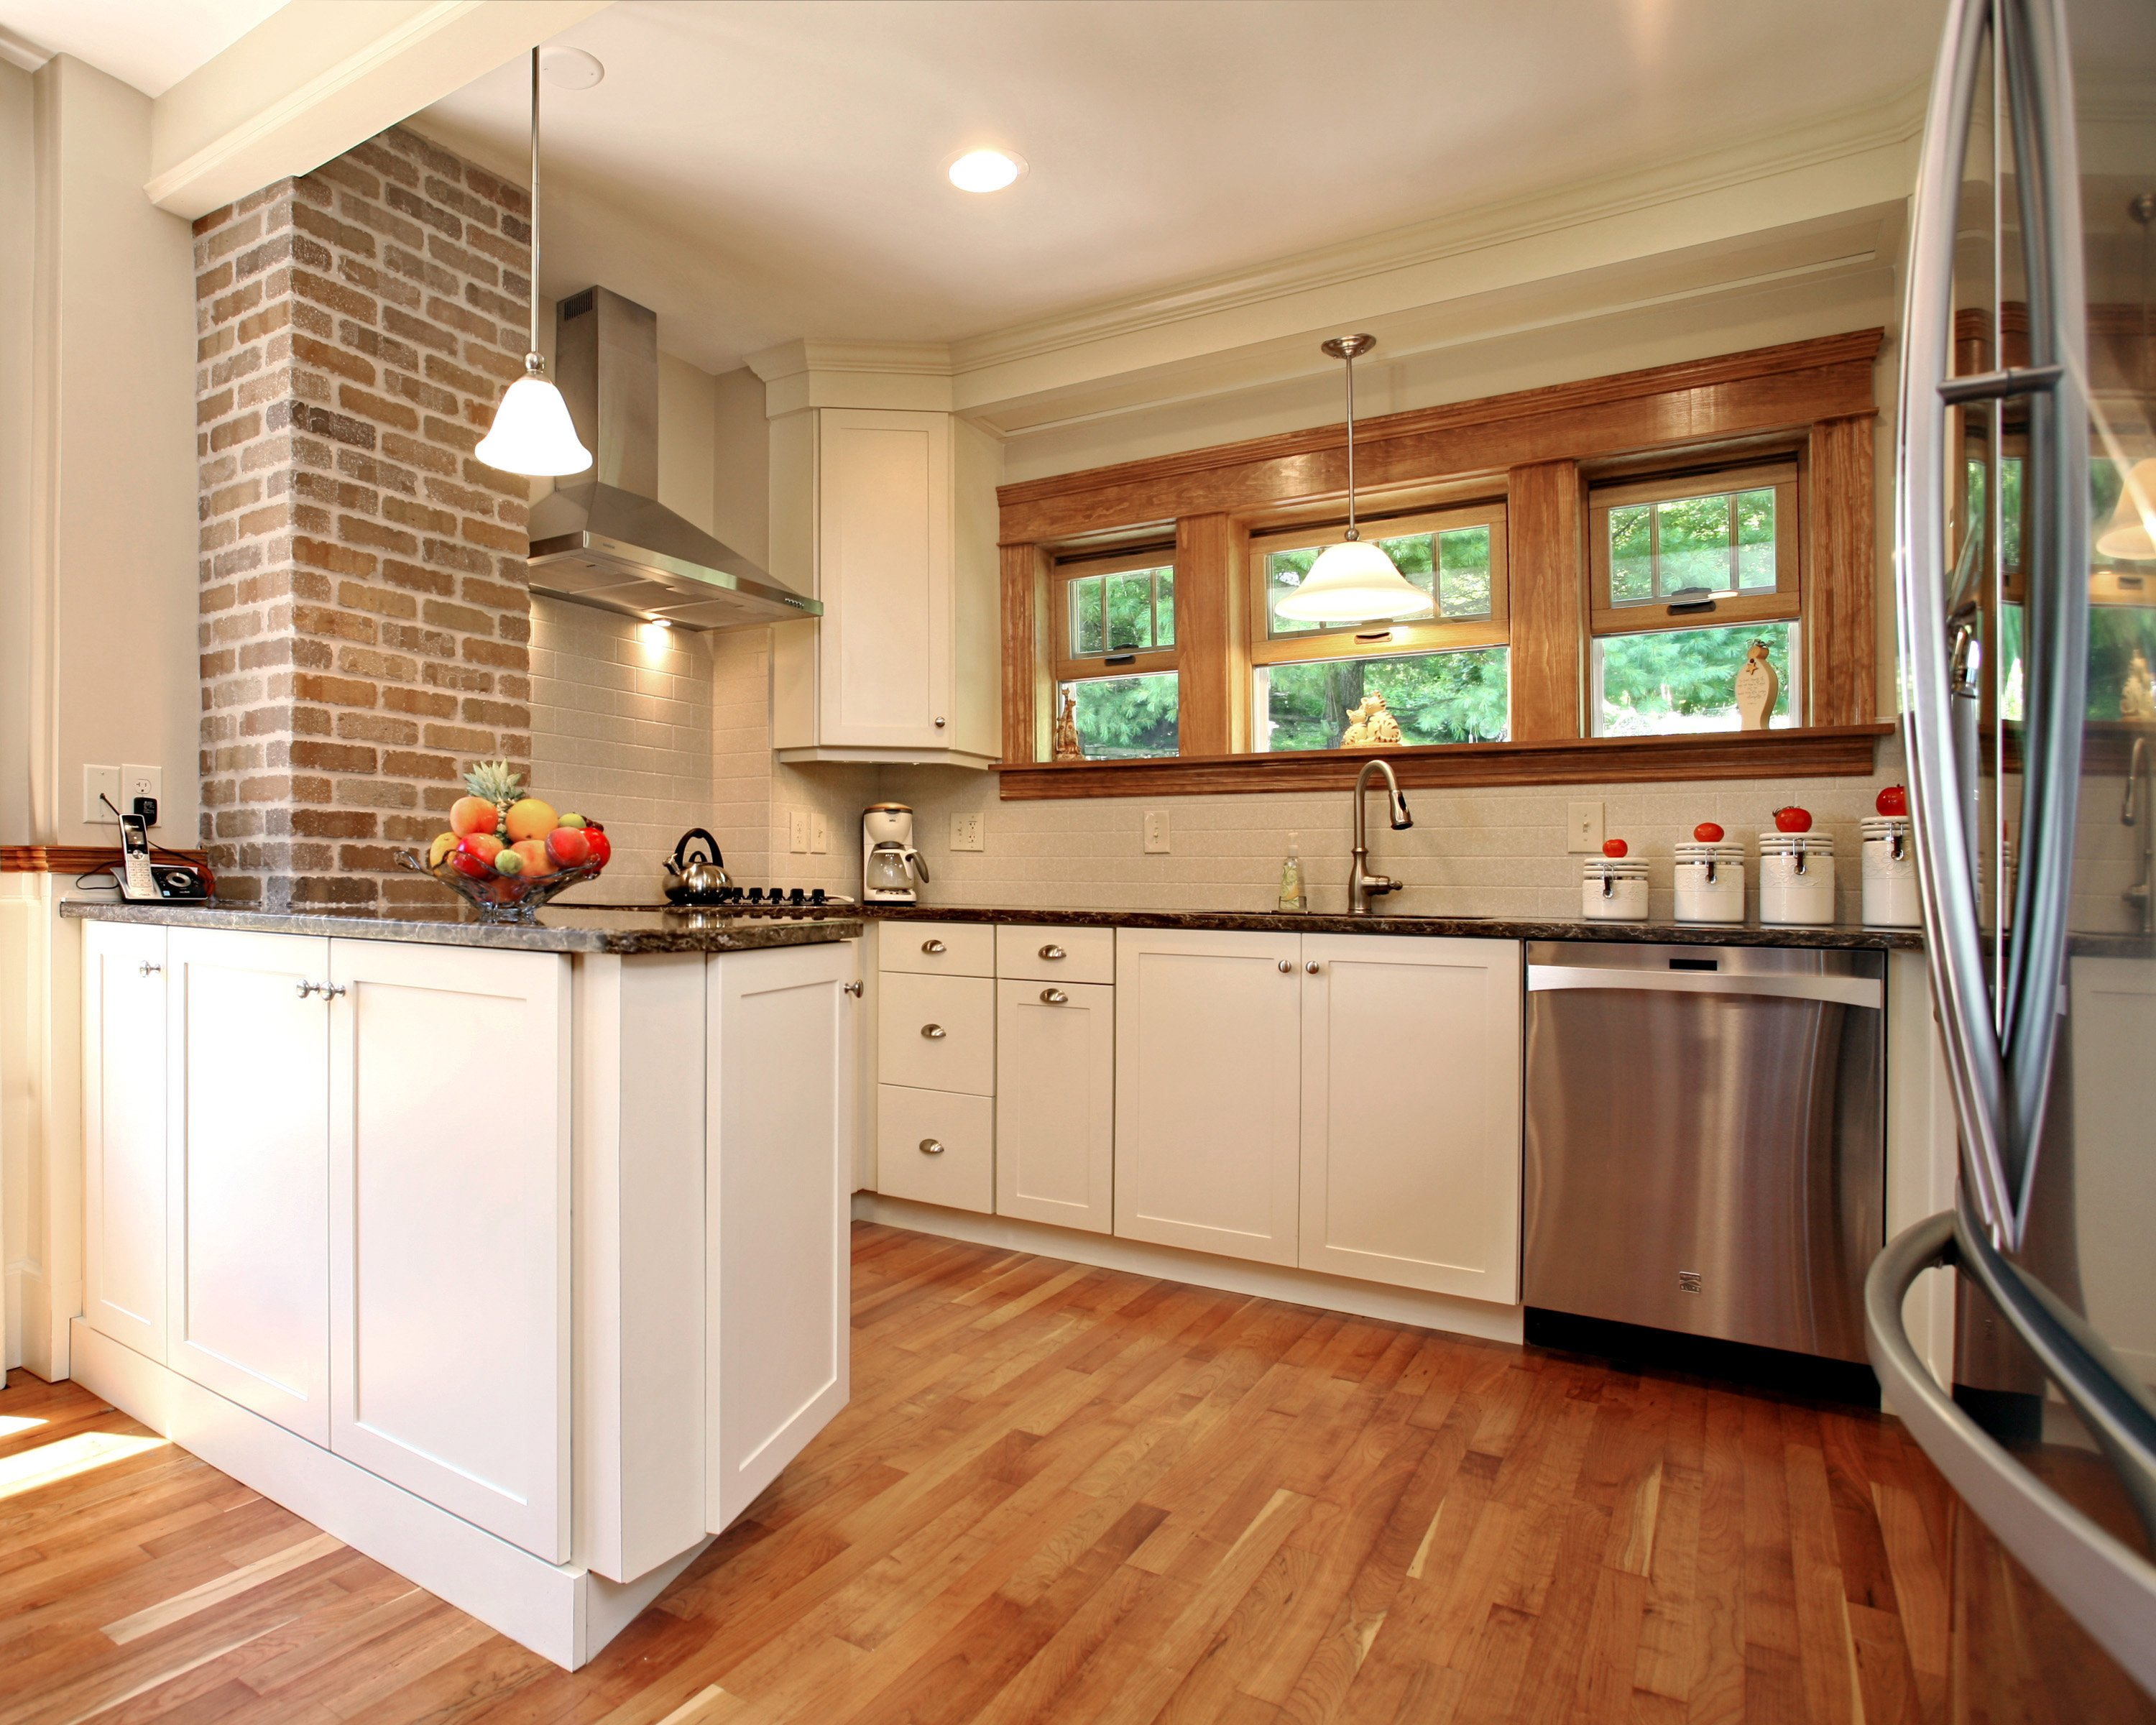 Kitchen Remodeling Tips for Home Resale